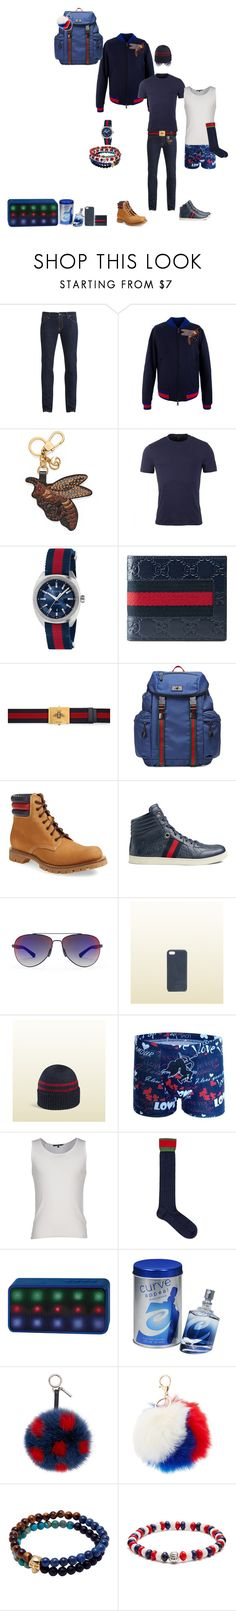 """""""Bee"""" by k-harm-1220 ❤ liked on Polyvore featuring Nudie Jeans Co., Gucci, Lyrix, Liz Claiborne, Fendi, Charlotte Russe, Nialaya, Babette Wasserman, Tateossian and men's fashion"""